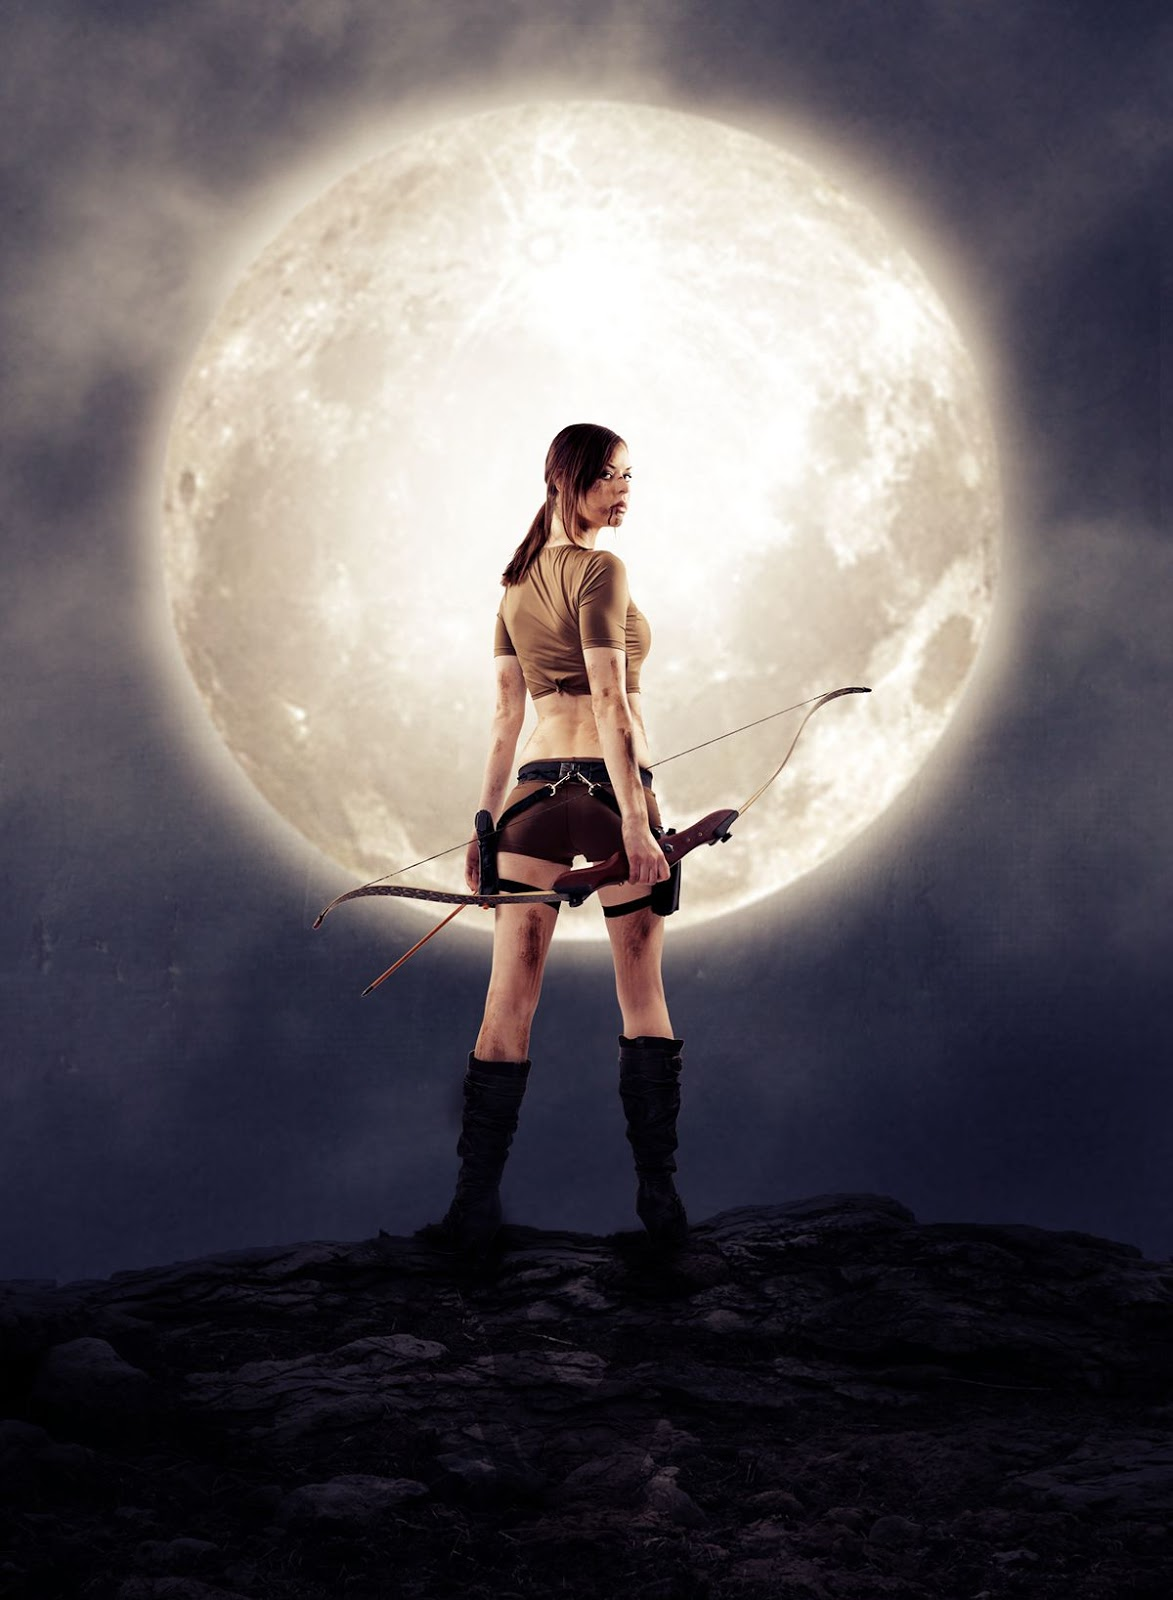 Warrior Woman With Moon Photo Manipulation Effects In Photoshop